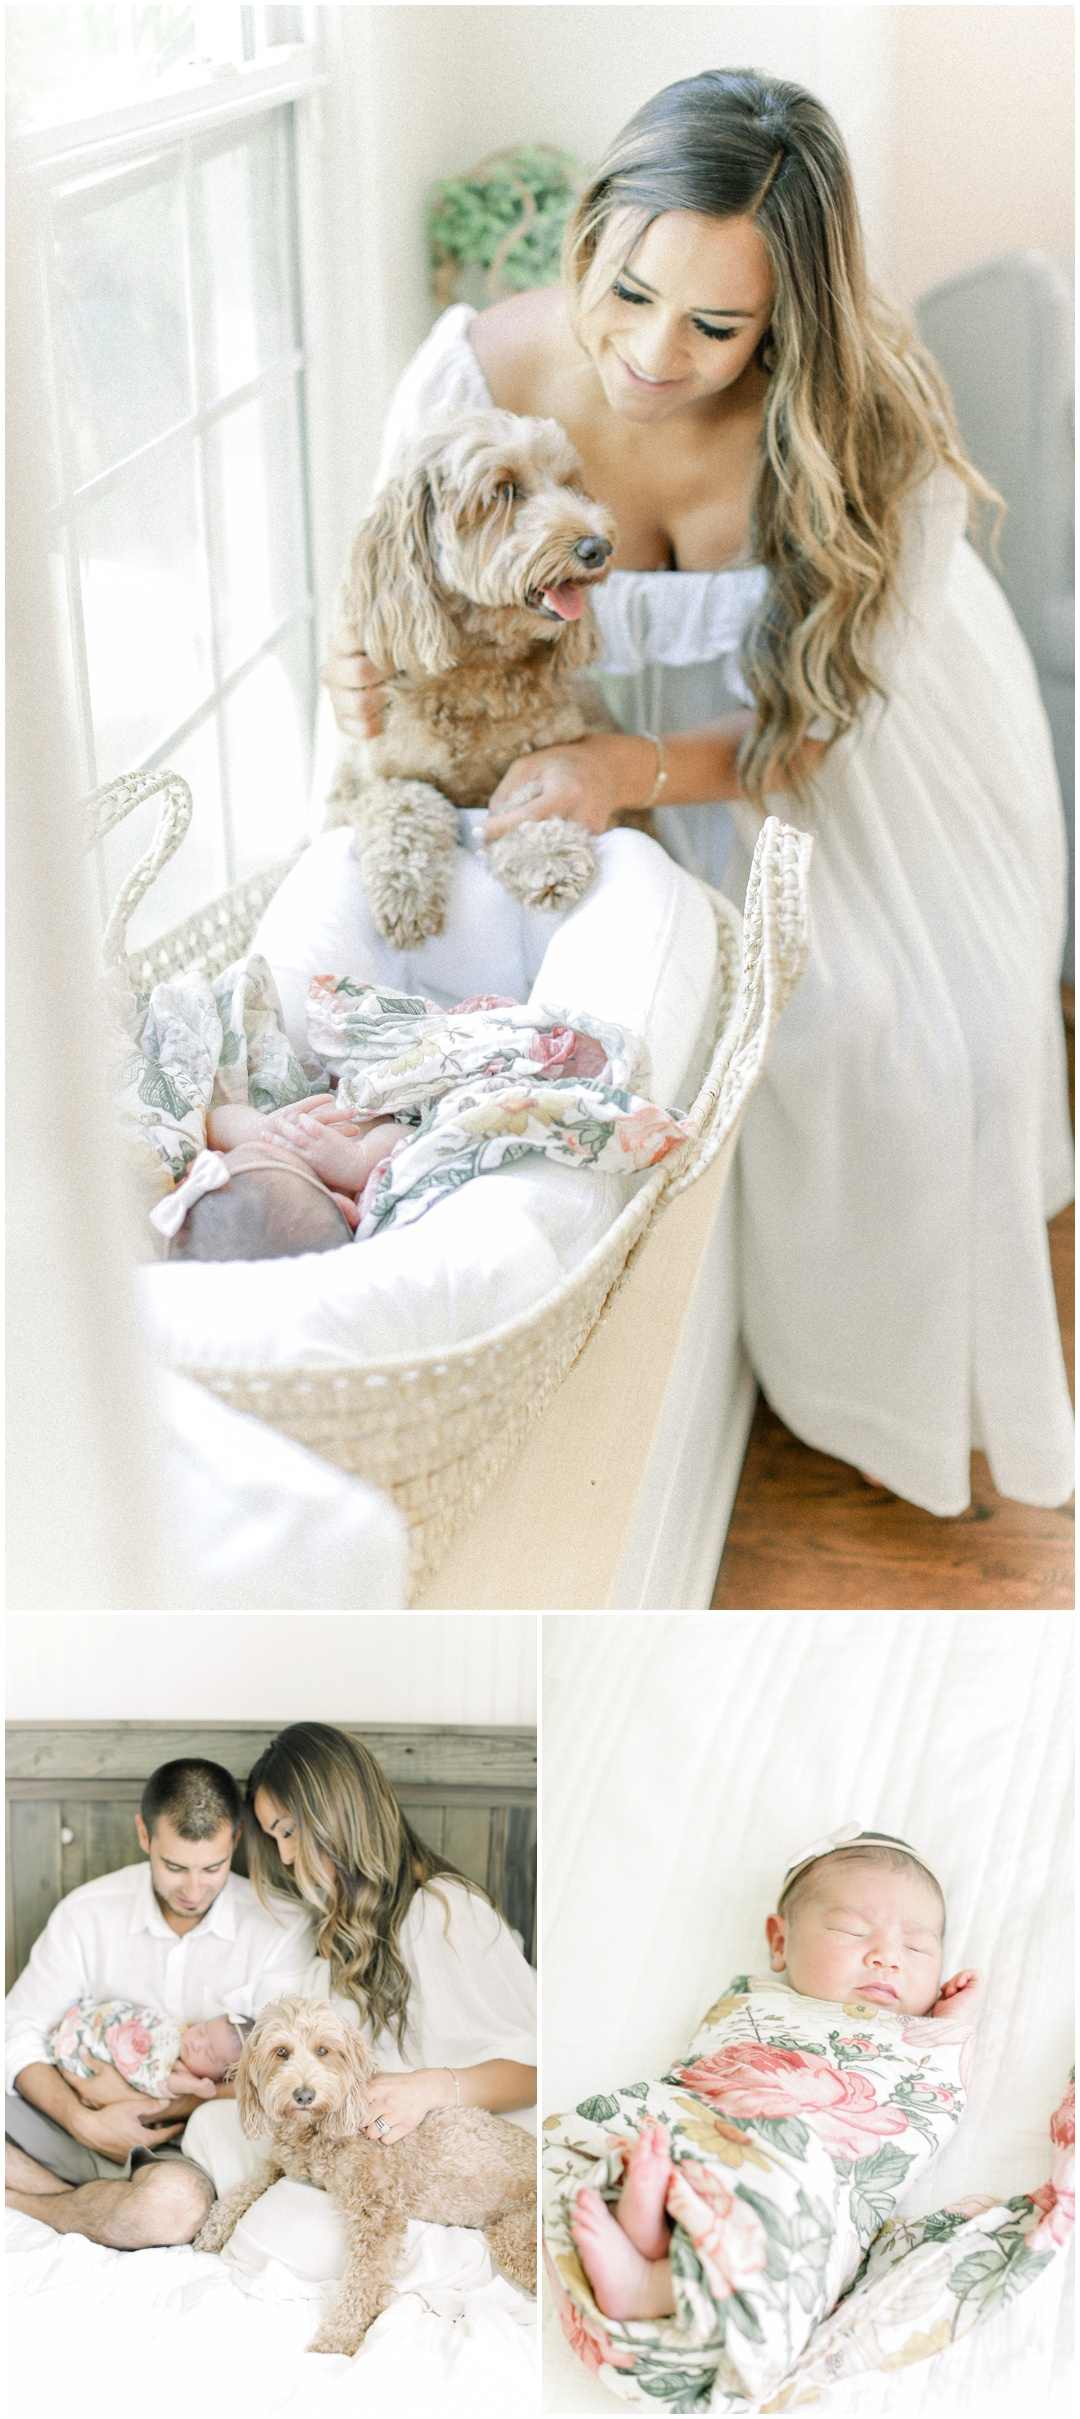 Newport_Beach_Newborn_Light_Airy_Natural_Photographer_Newport_Beach_Photographer_Orange_County_Family_Photographer_Cori_Kleckner_Photography_Newport_Beach_Newborn_Photographer_Taylor_Colacion_Family__4253.jpg